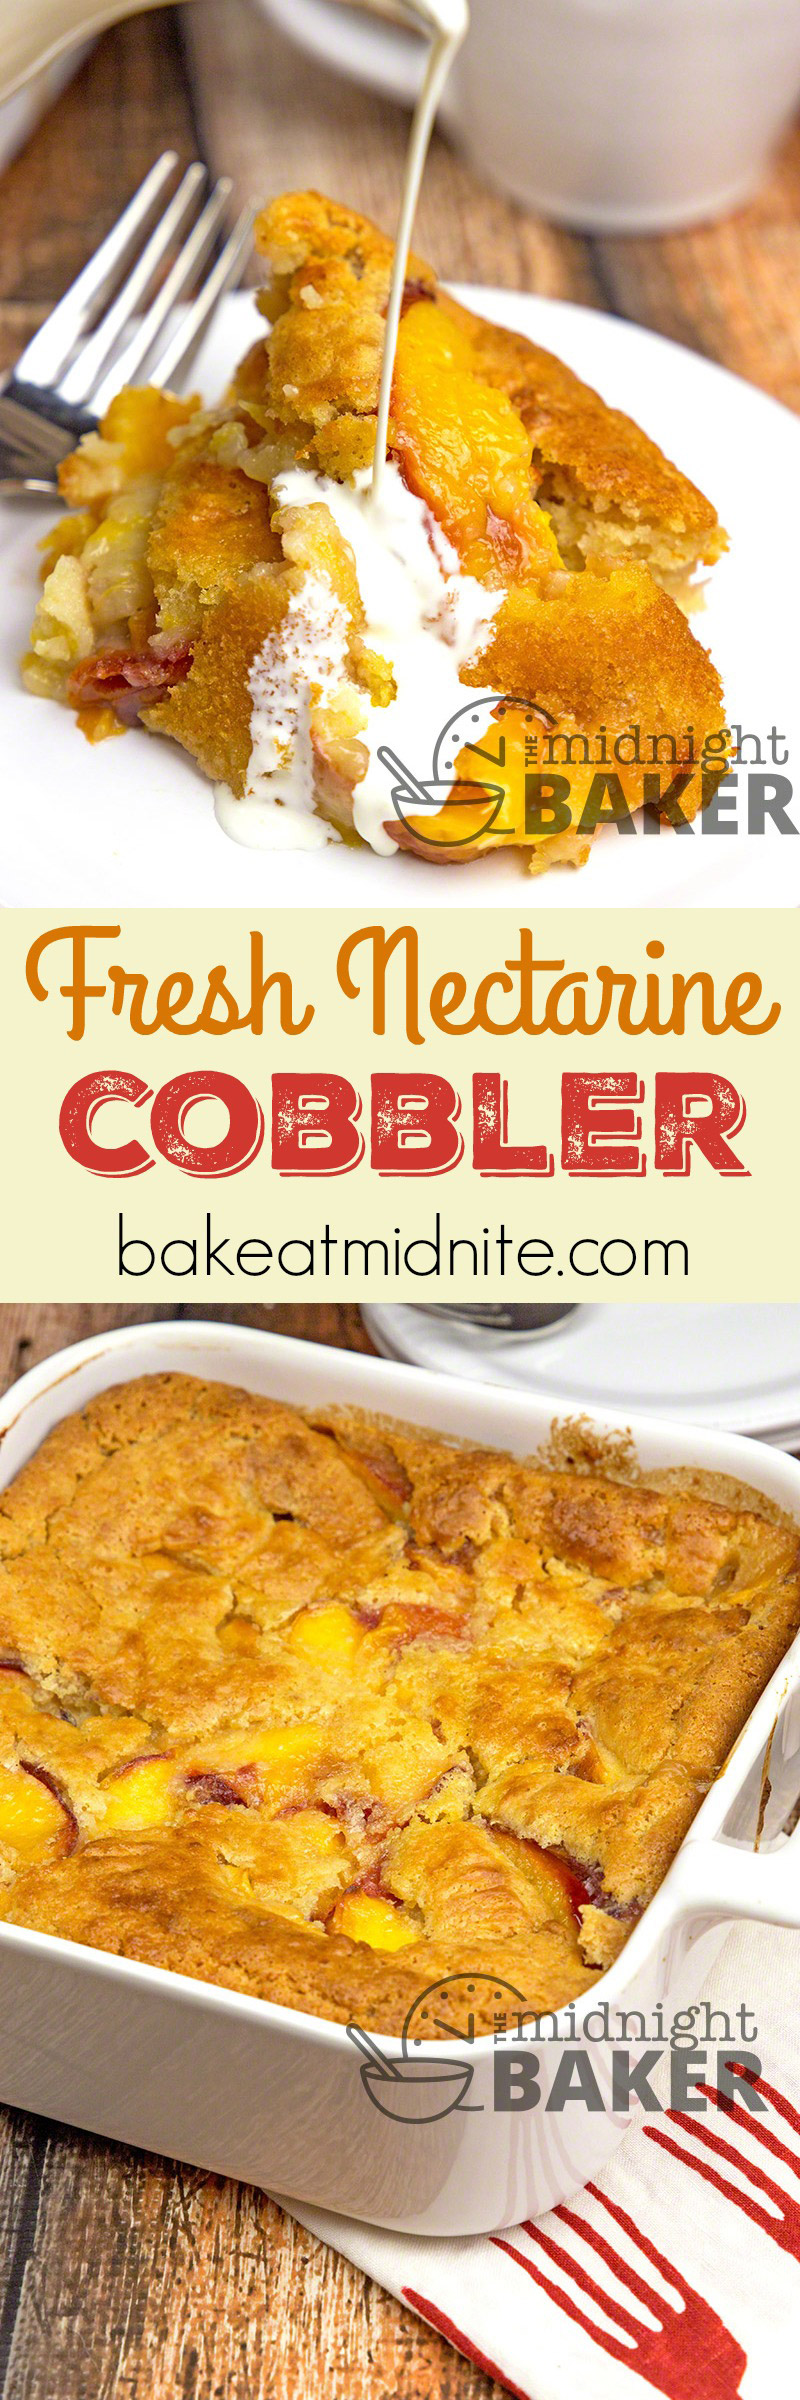 Nectarines spell summer and what better way to use them than in this simple and tasty cobbler. Peaches may be subbed for the nectarines.